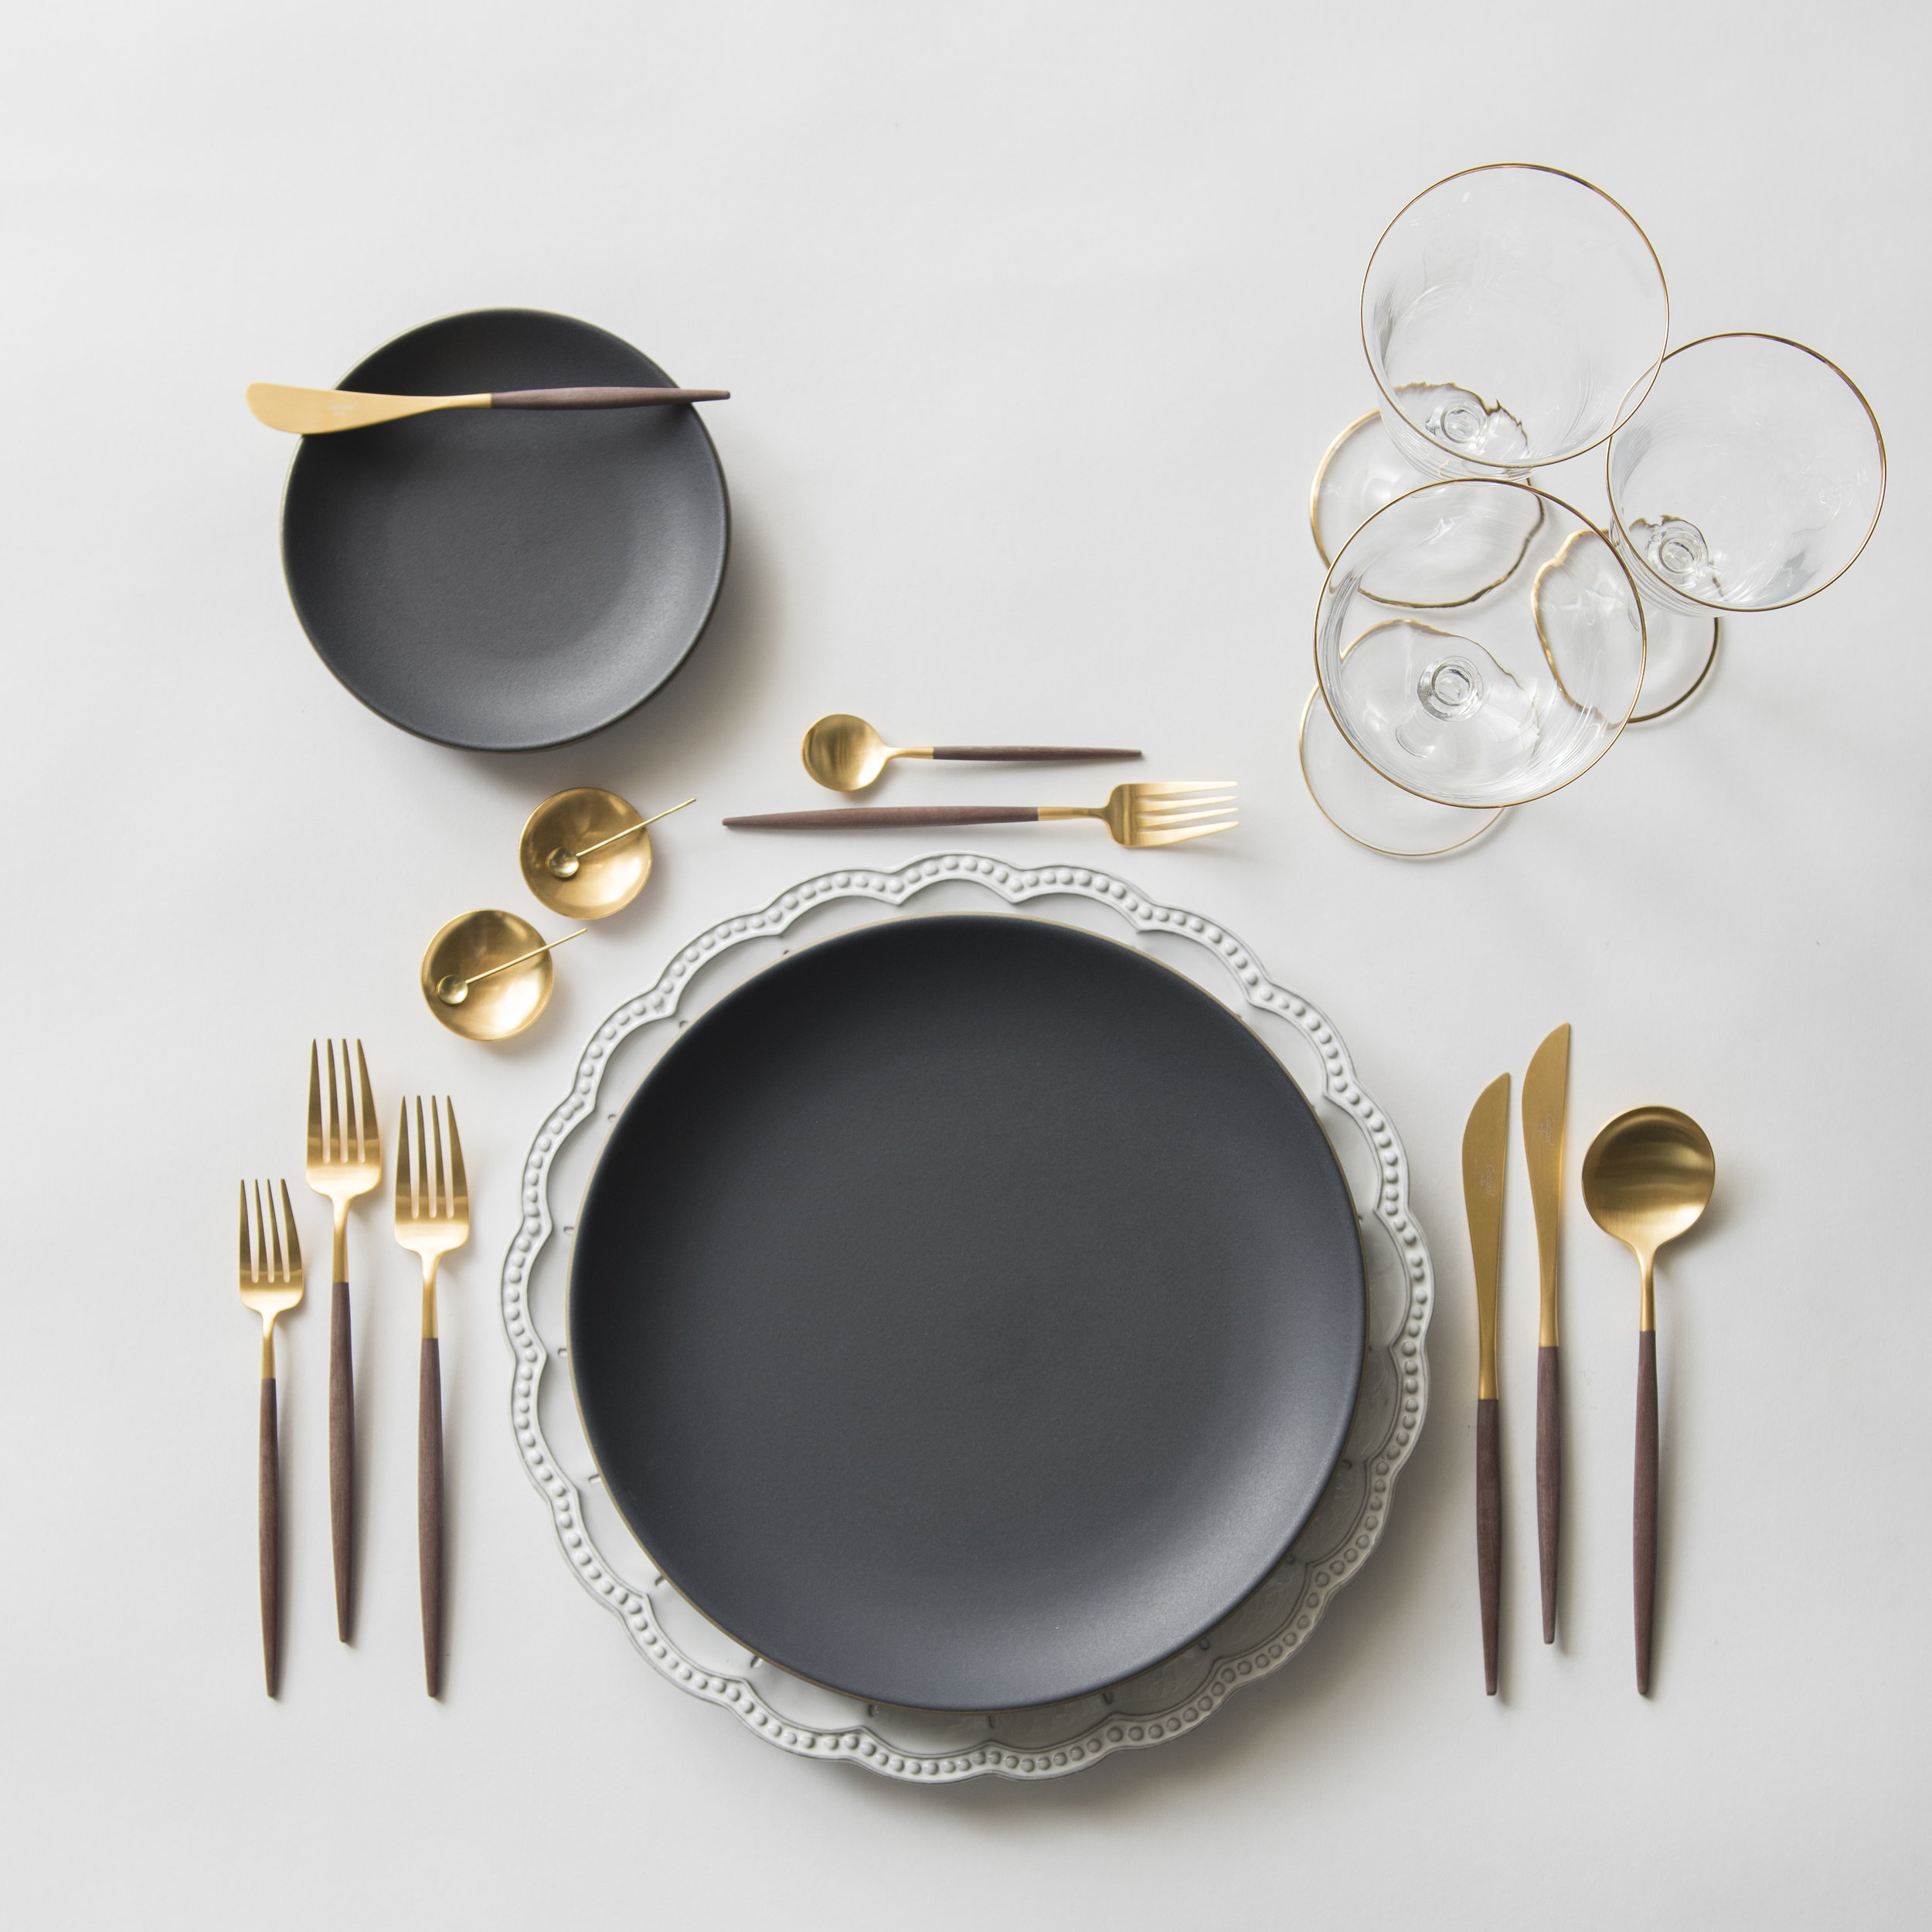 RENT: Signature Collection Chargers + Heath Ceramics in Indigo/Slate + Goa Flatware in Brushed 24k Gold/Wood + Chloe 24k Gold Rimmed Stemware + 14k Gold Salt Cellars + Tiny Gold Spoons  SHOP: Goa Flatware in Brushed 24k Gold/Wood + Chloe 24k Gold Rimmed Stemware + 14k Gold Salt Cellars + Tiny Gold Spoons